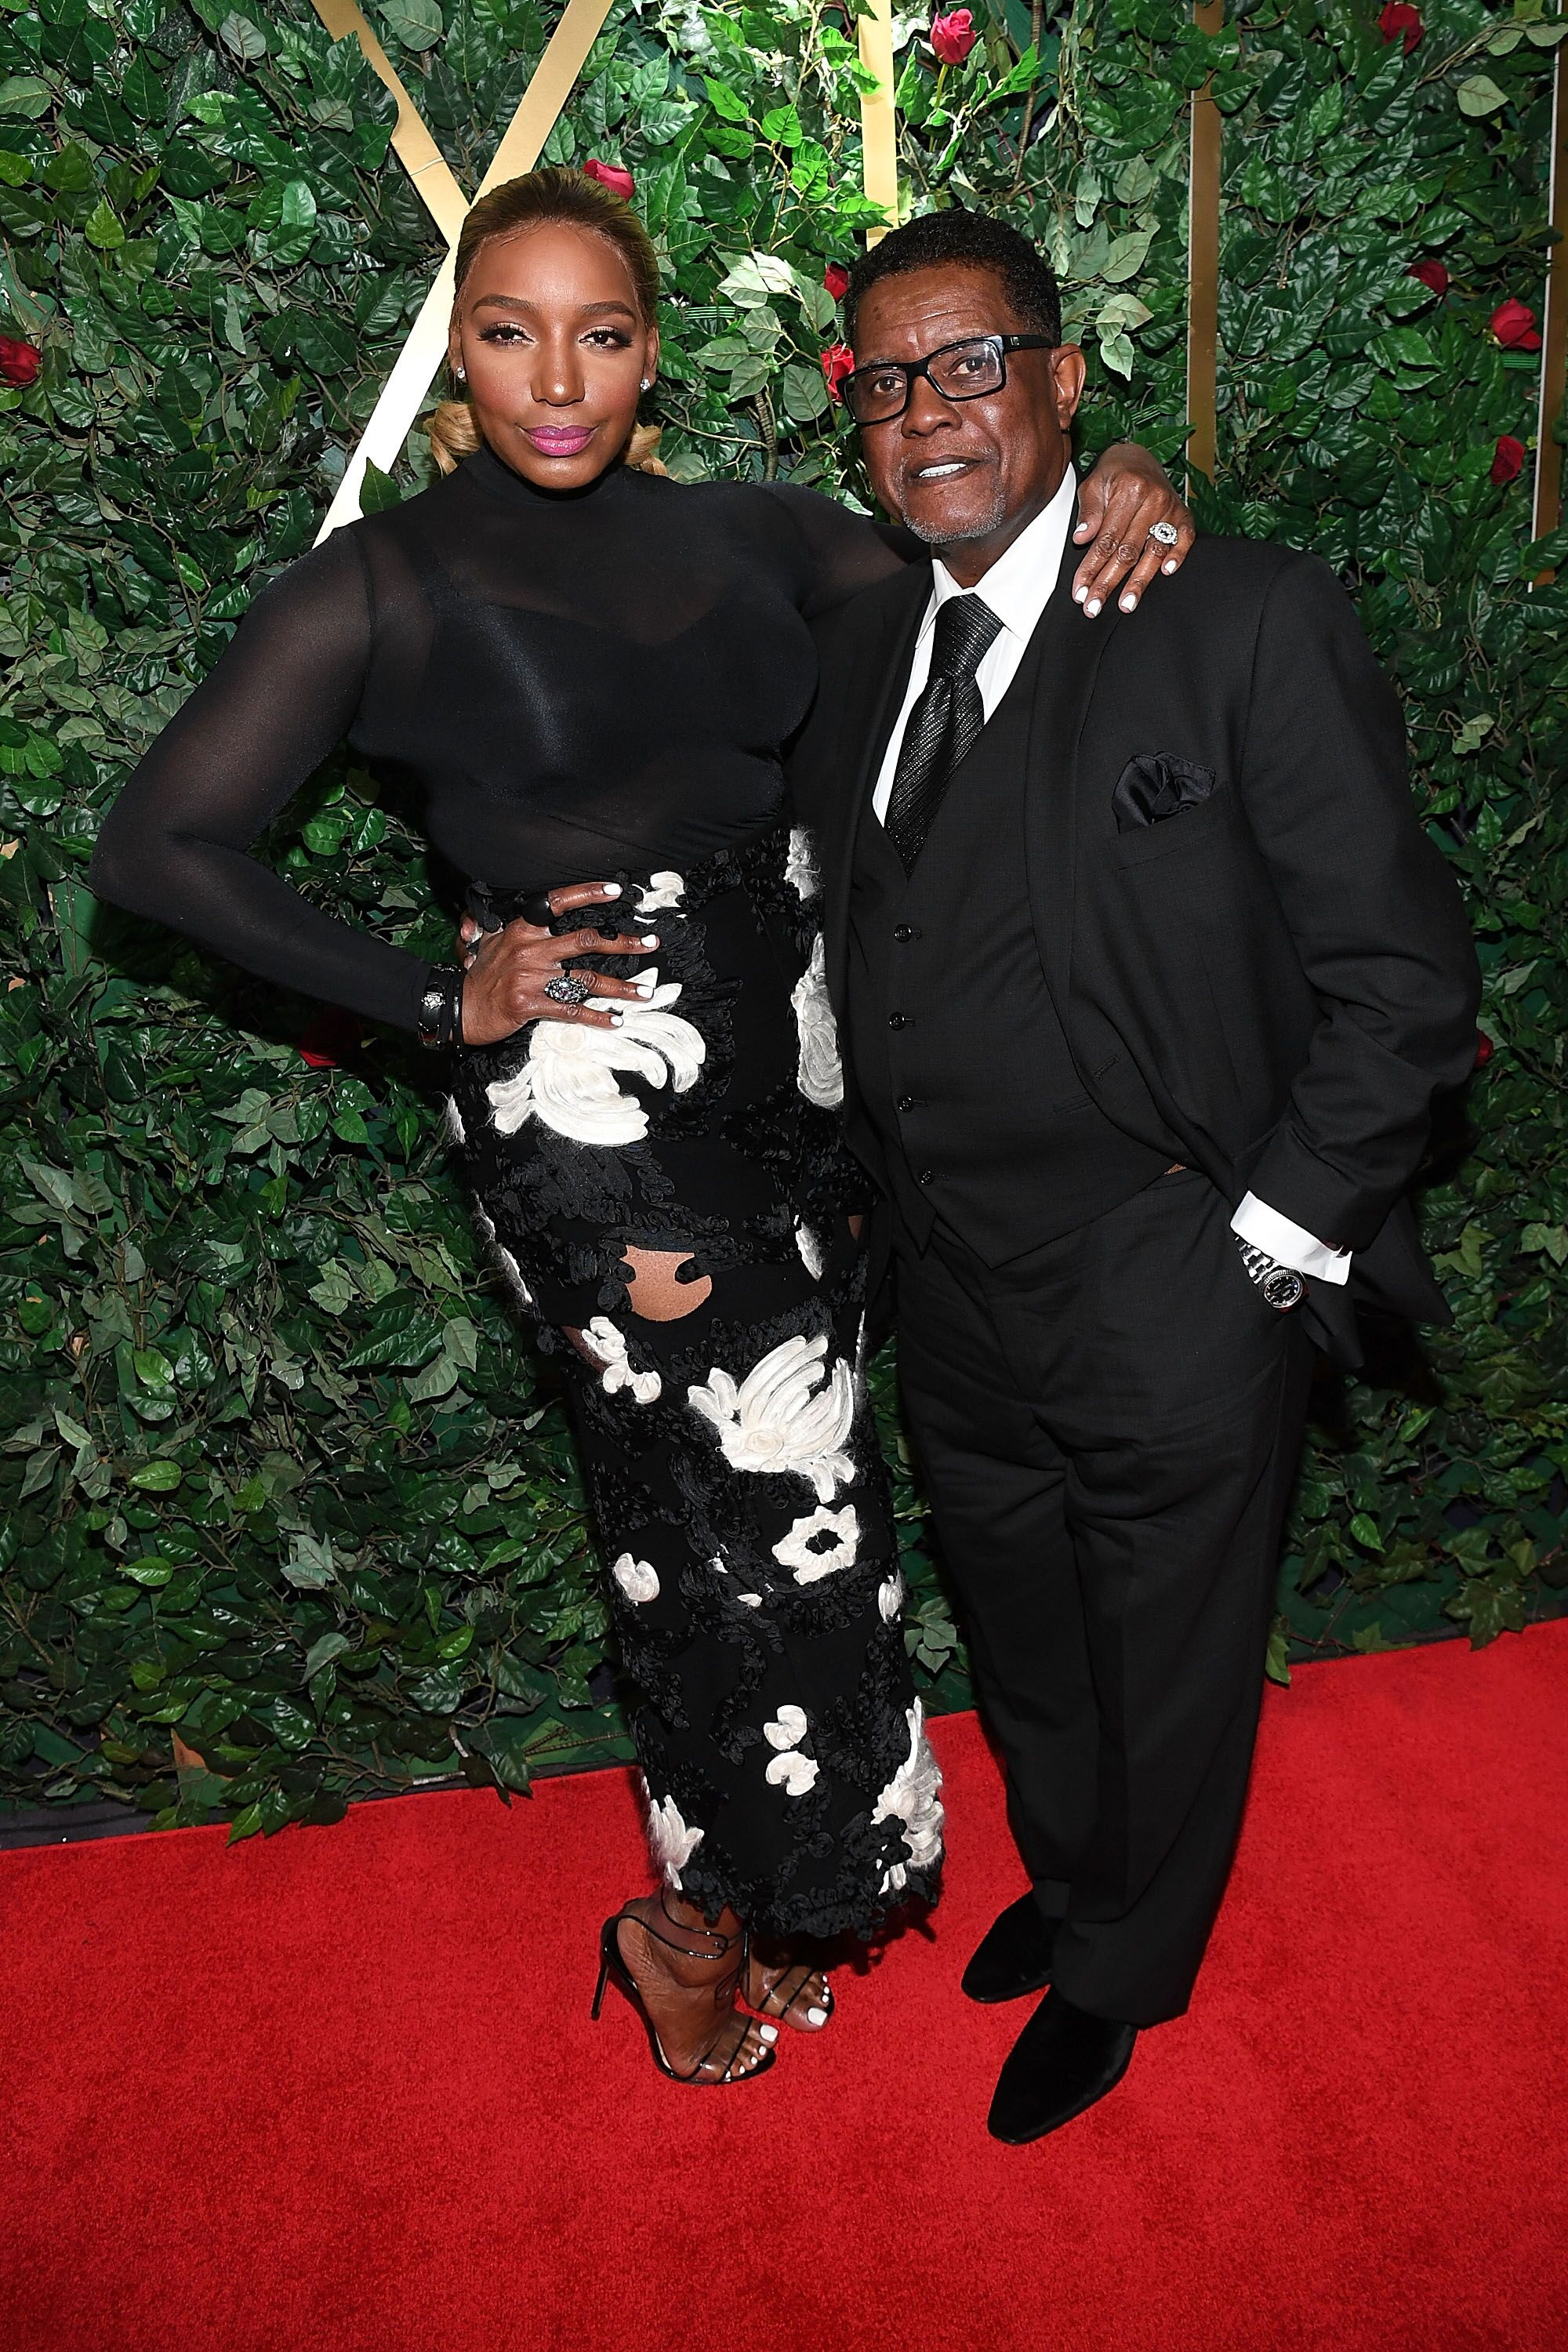 NeNe Leakes and Greg Leakes at the Celebration For A Cure in January 2017 in Atlanta/ Source: Getty Images